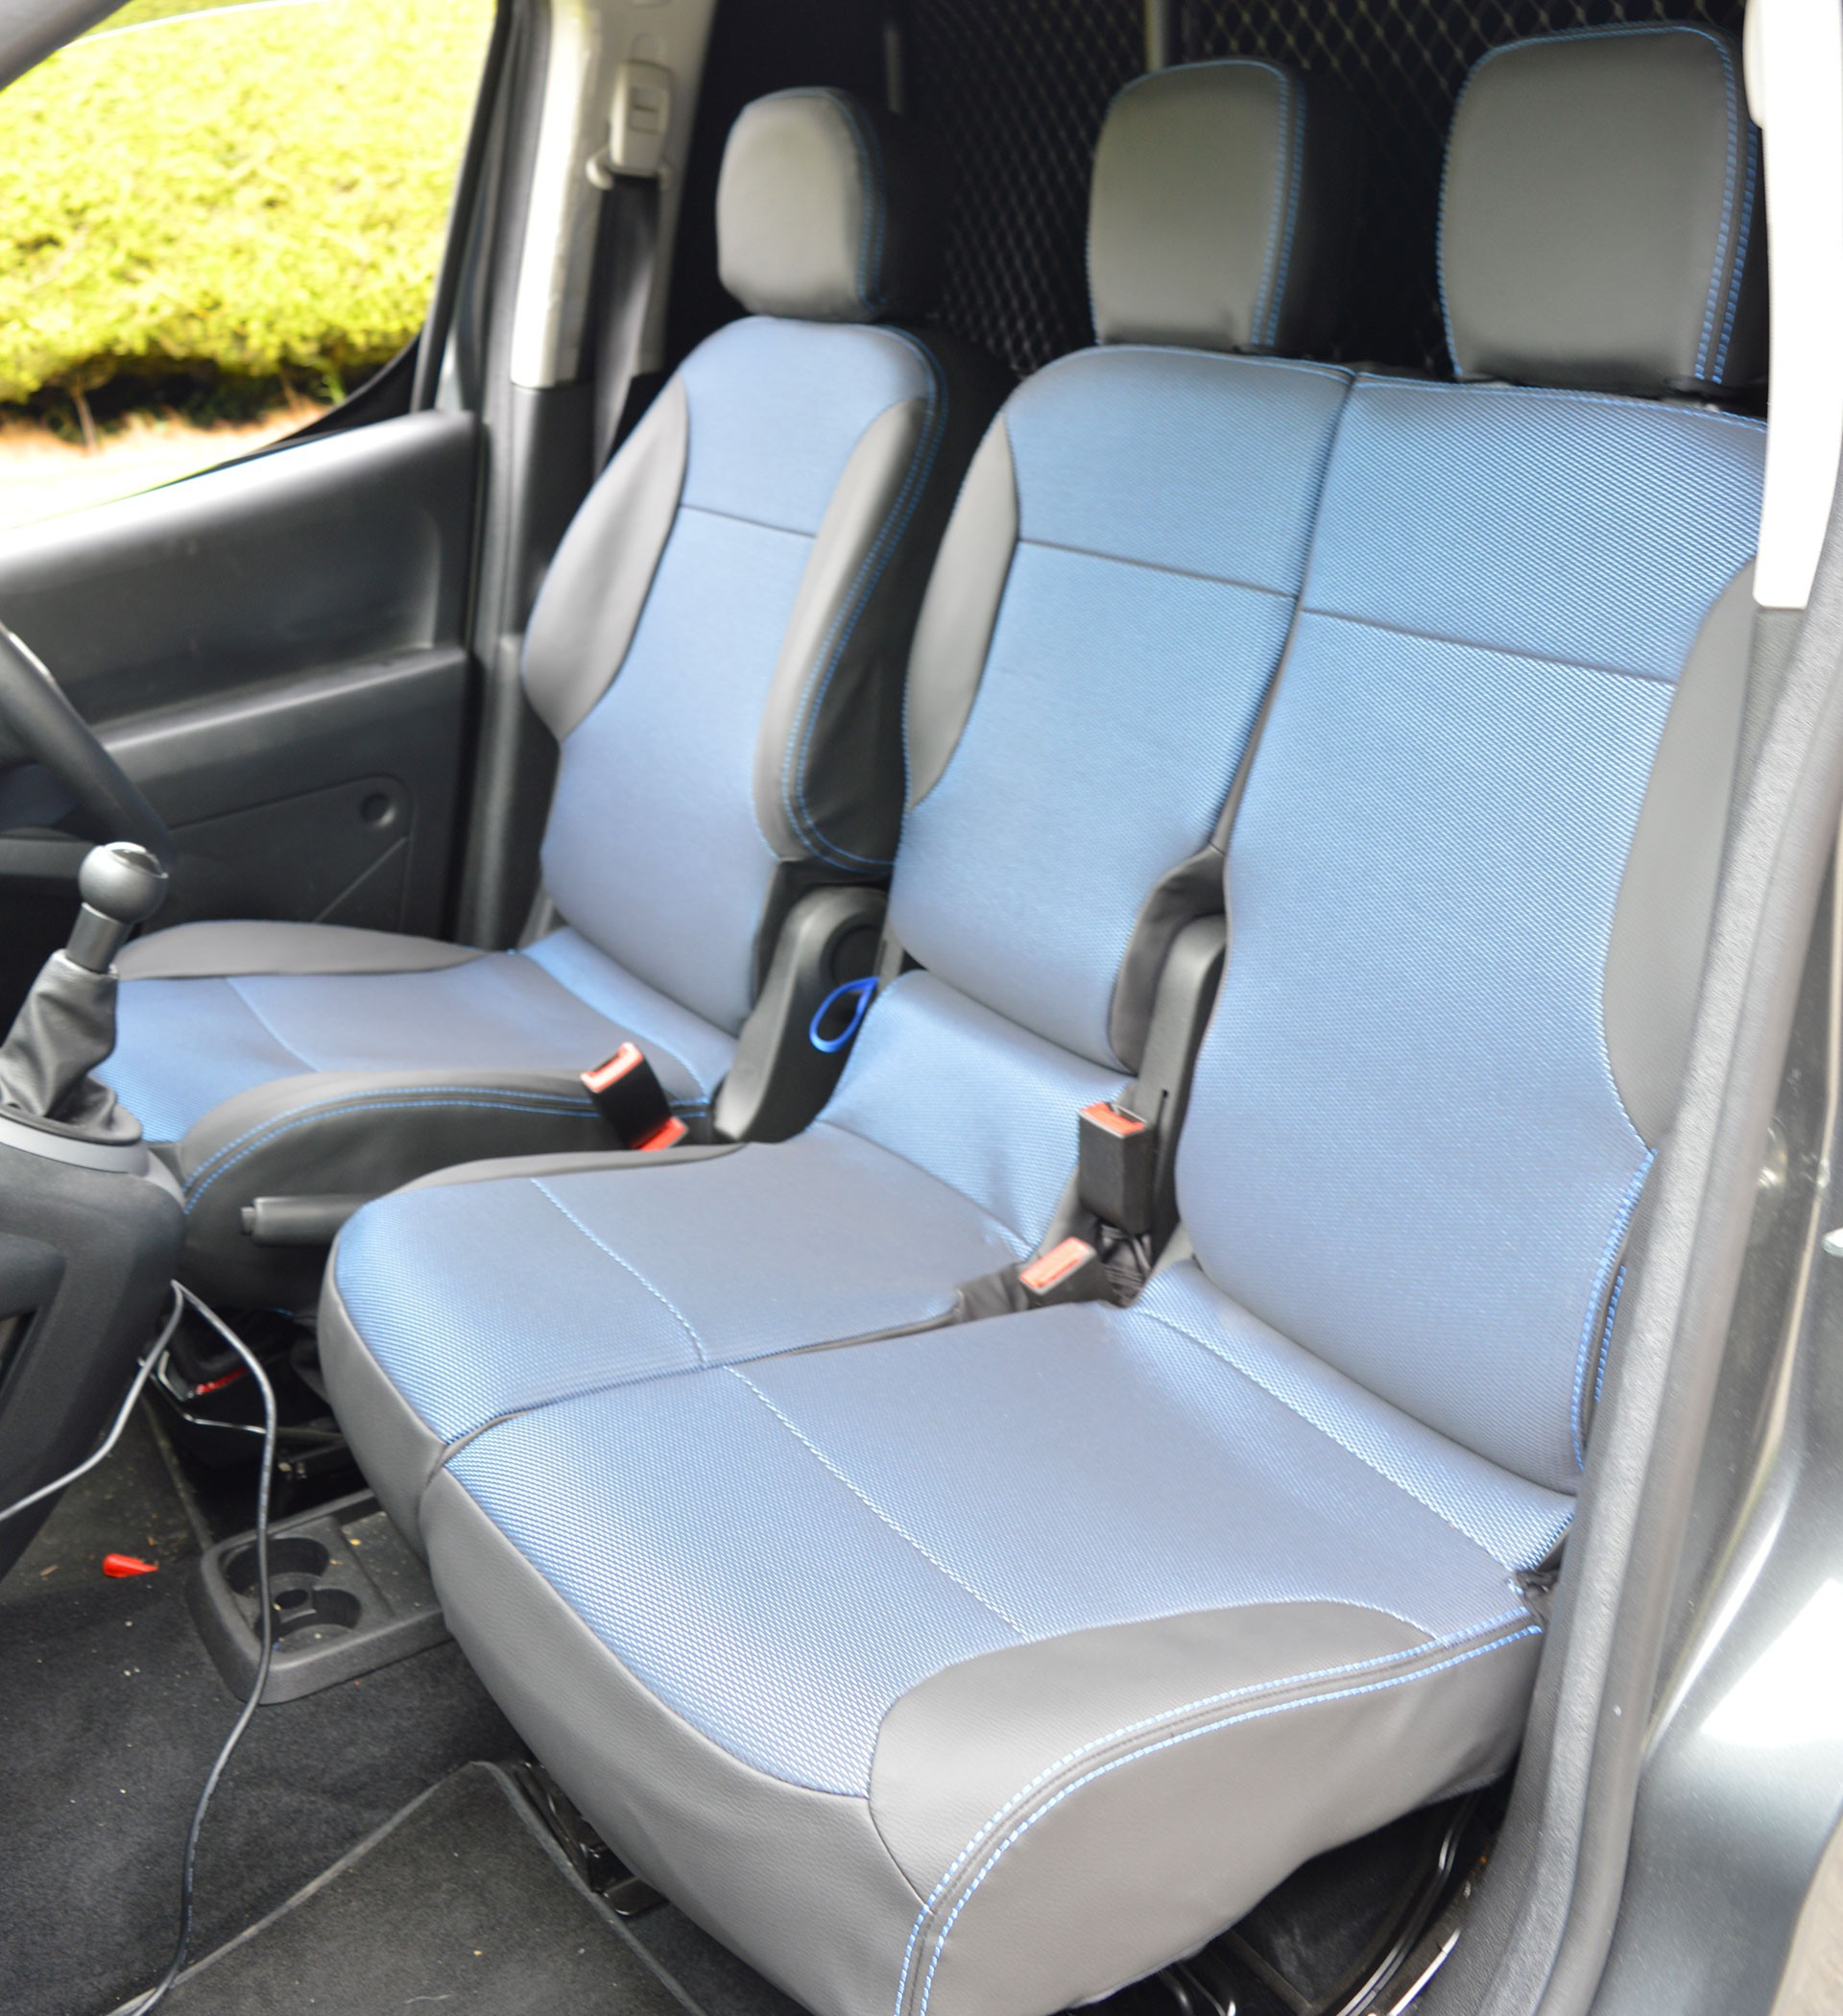 Citroen Berlingo Tailored Leatherette & Fabric Van Seat Covers